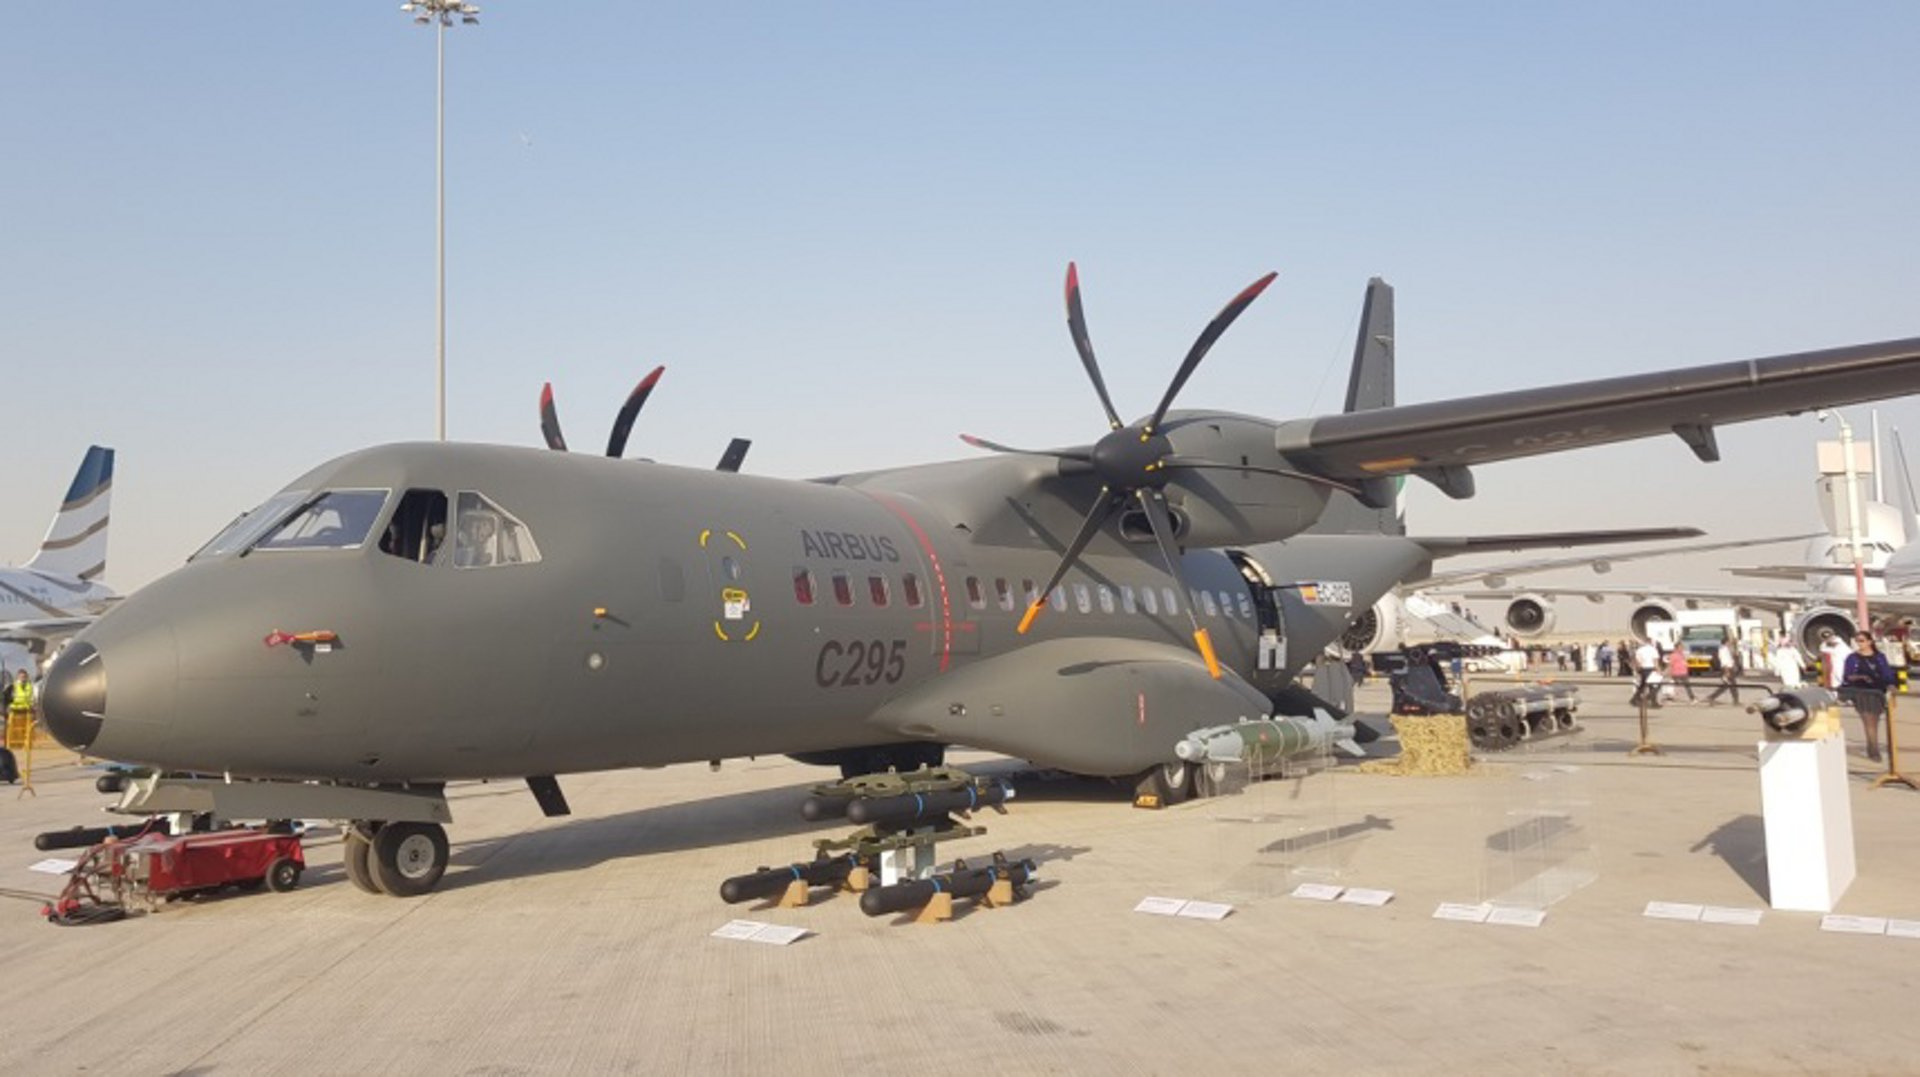 C295 Armed Version